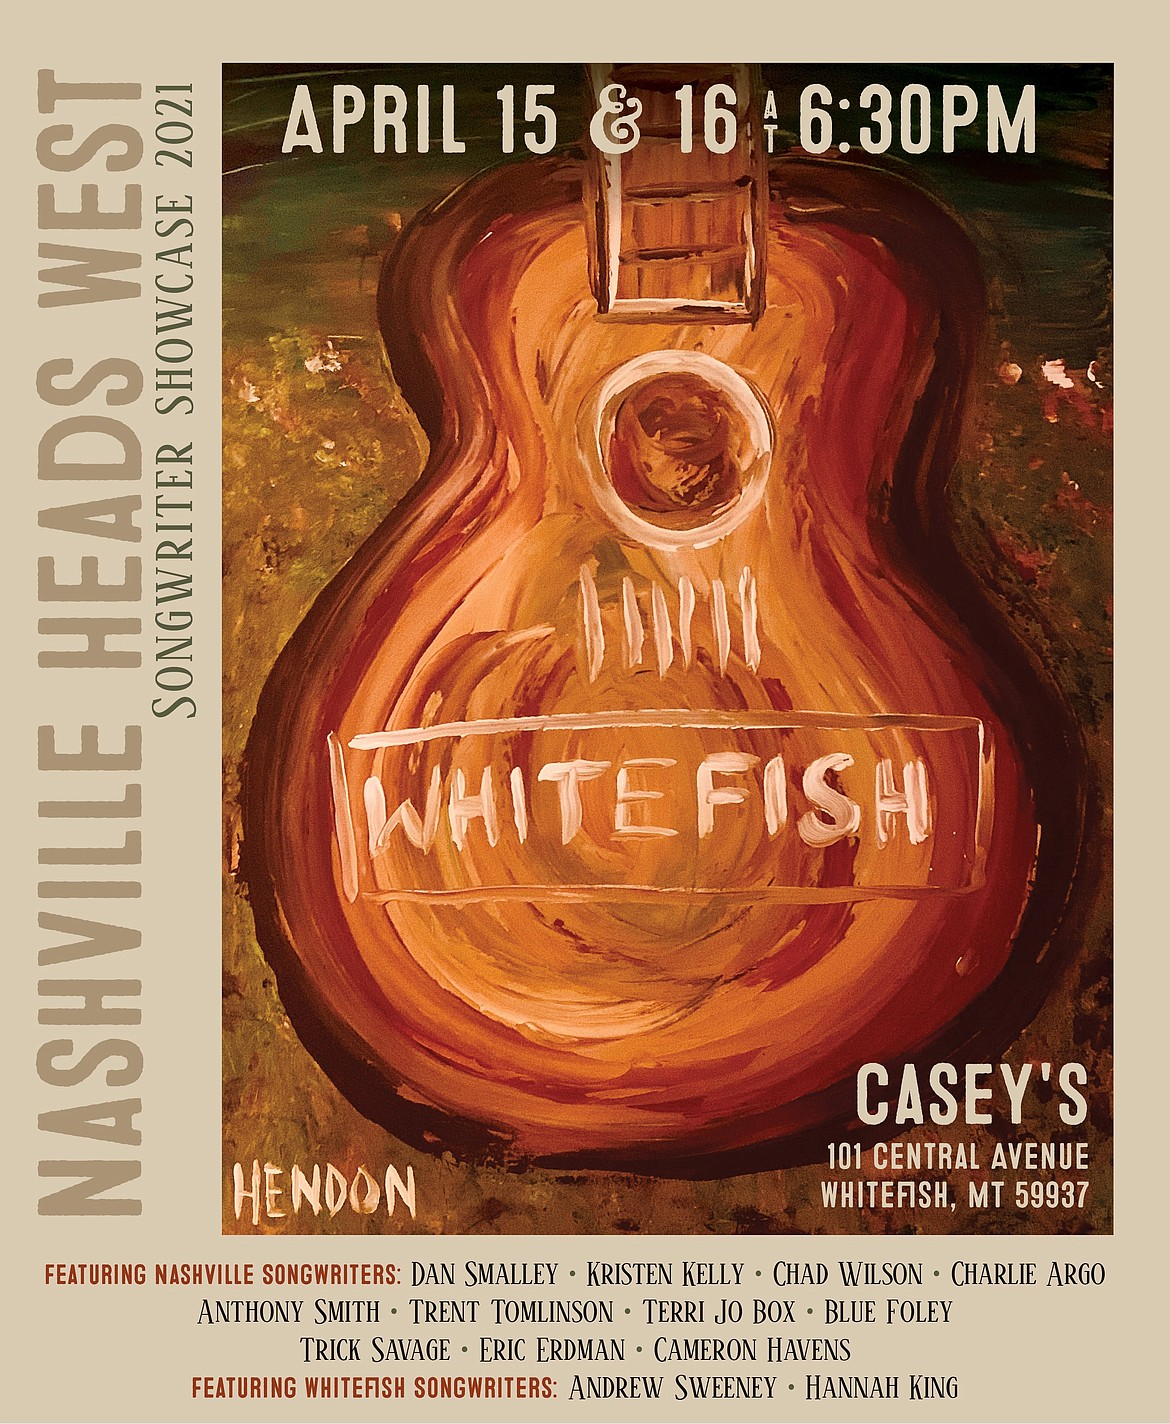 Nashville Heads West songwriter showcase will perform at Casey's on April 15-16. (Courtesy photo)